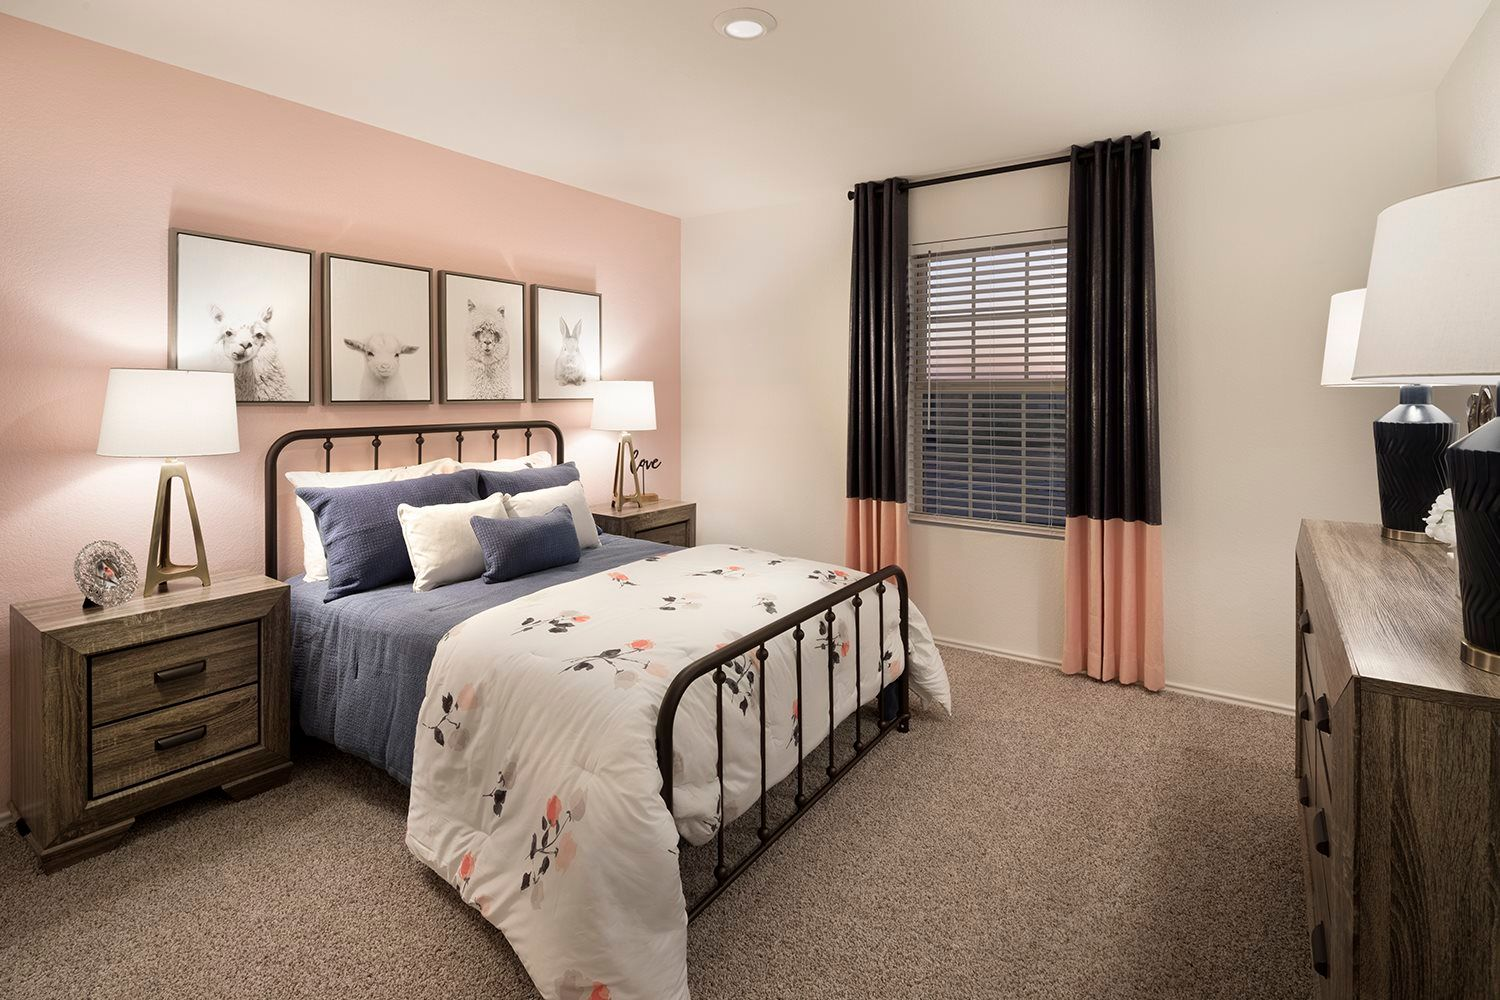 Bedroom featured in the Hillside By Lennar in Dallas, TX